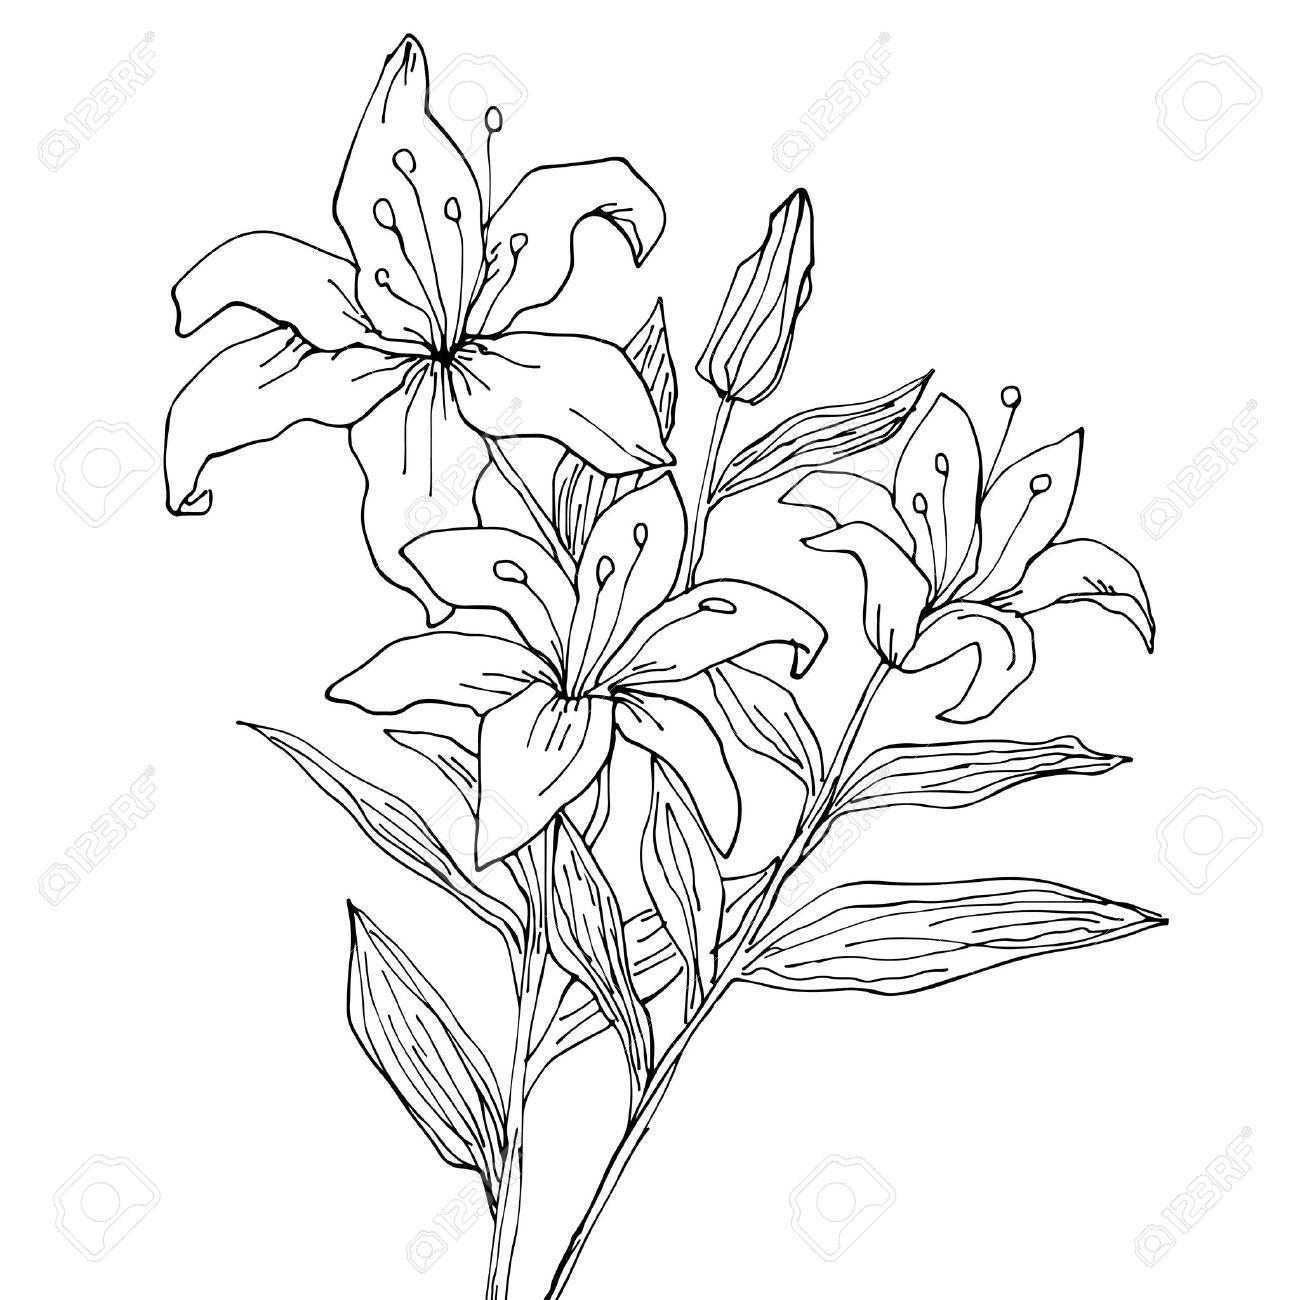 Lily flowers isolated hand drawing illustration royalty free lily flowers isolated hand drawing illustration stock vector 27656141 izmirmasajfo